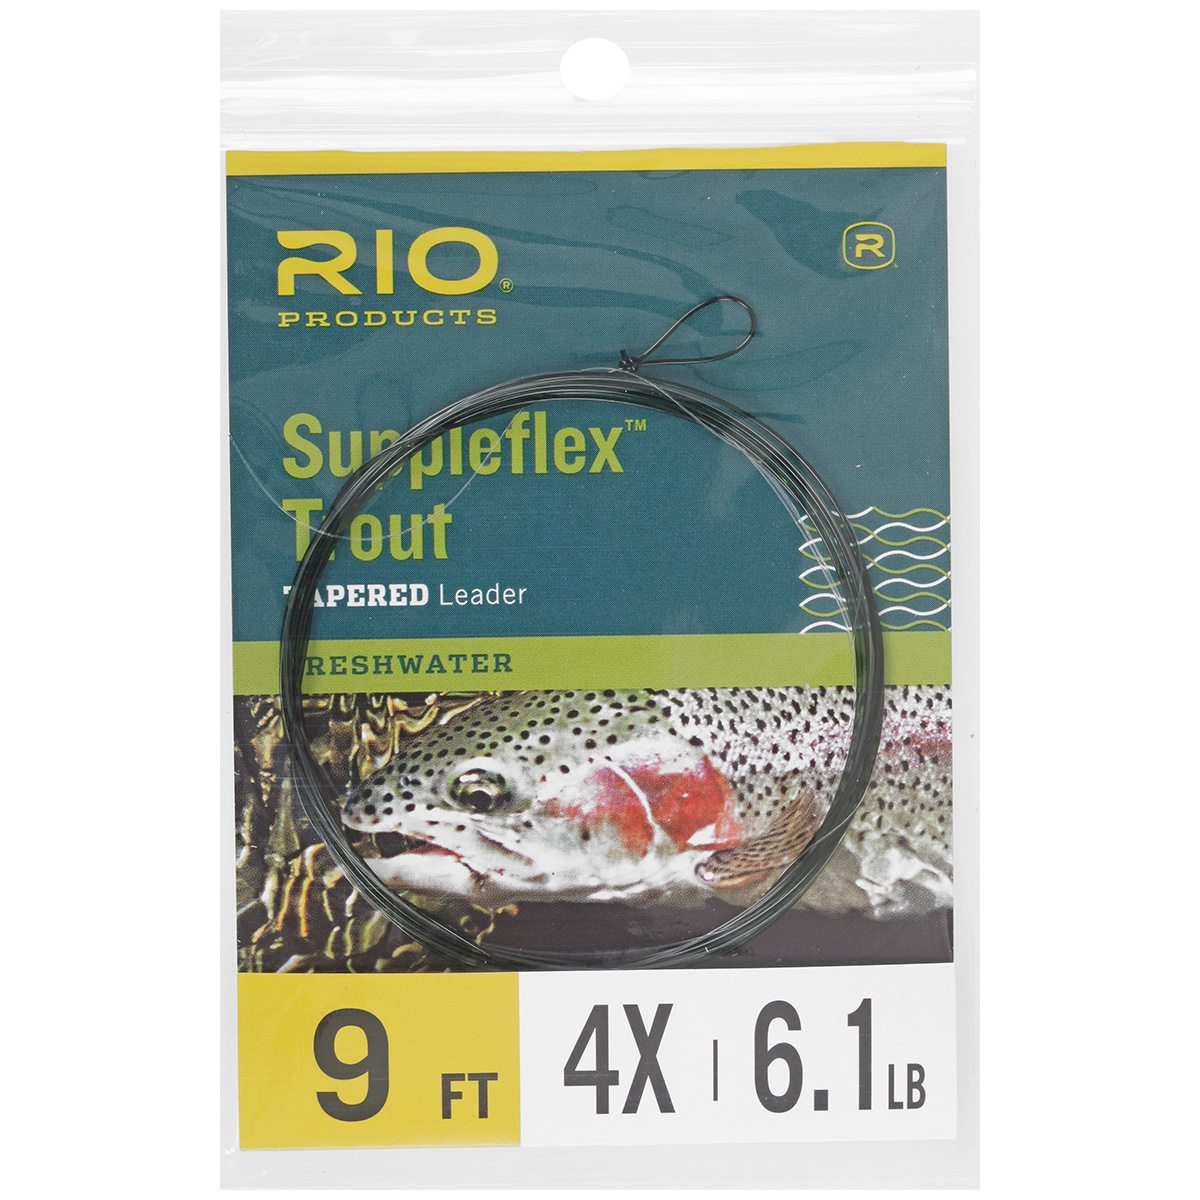 Rio Suppleflex Trout Leader 9 FT